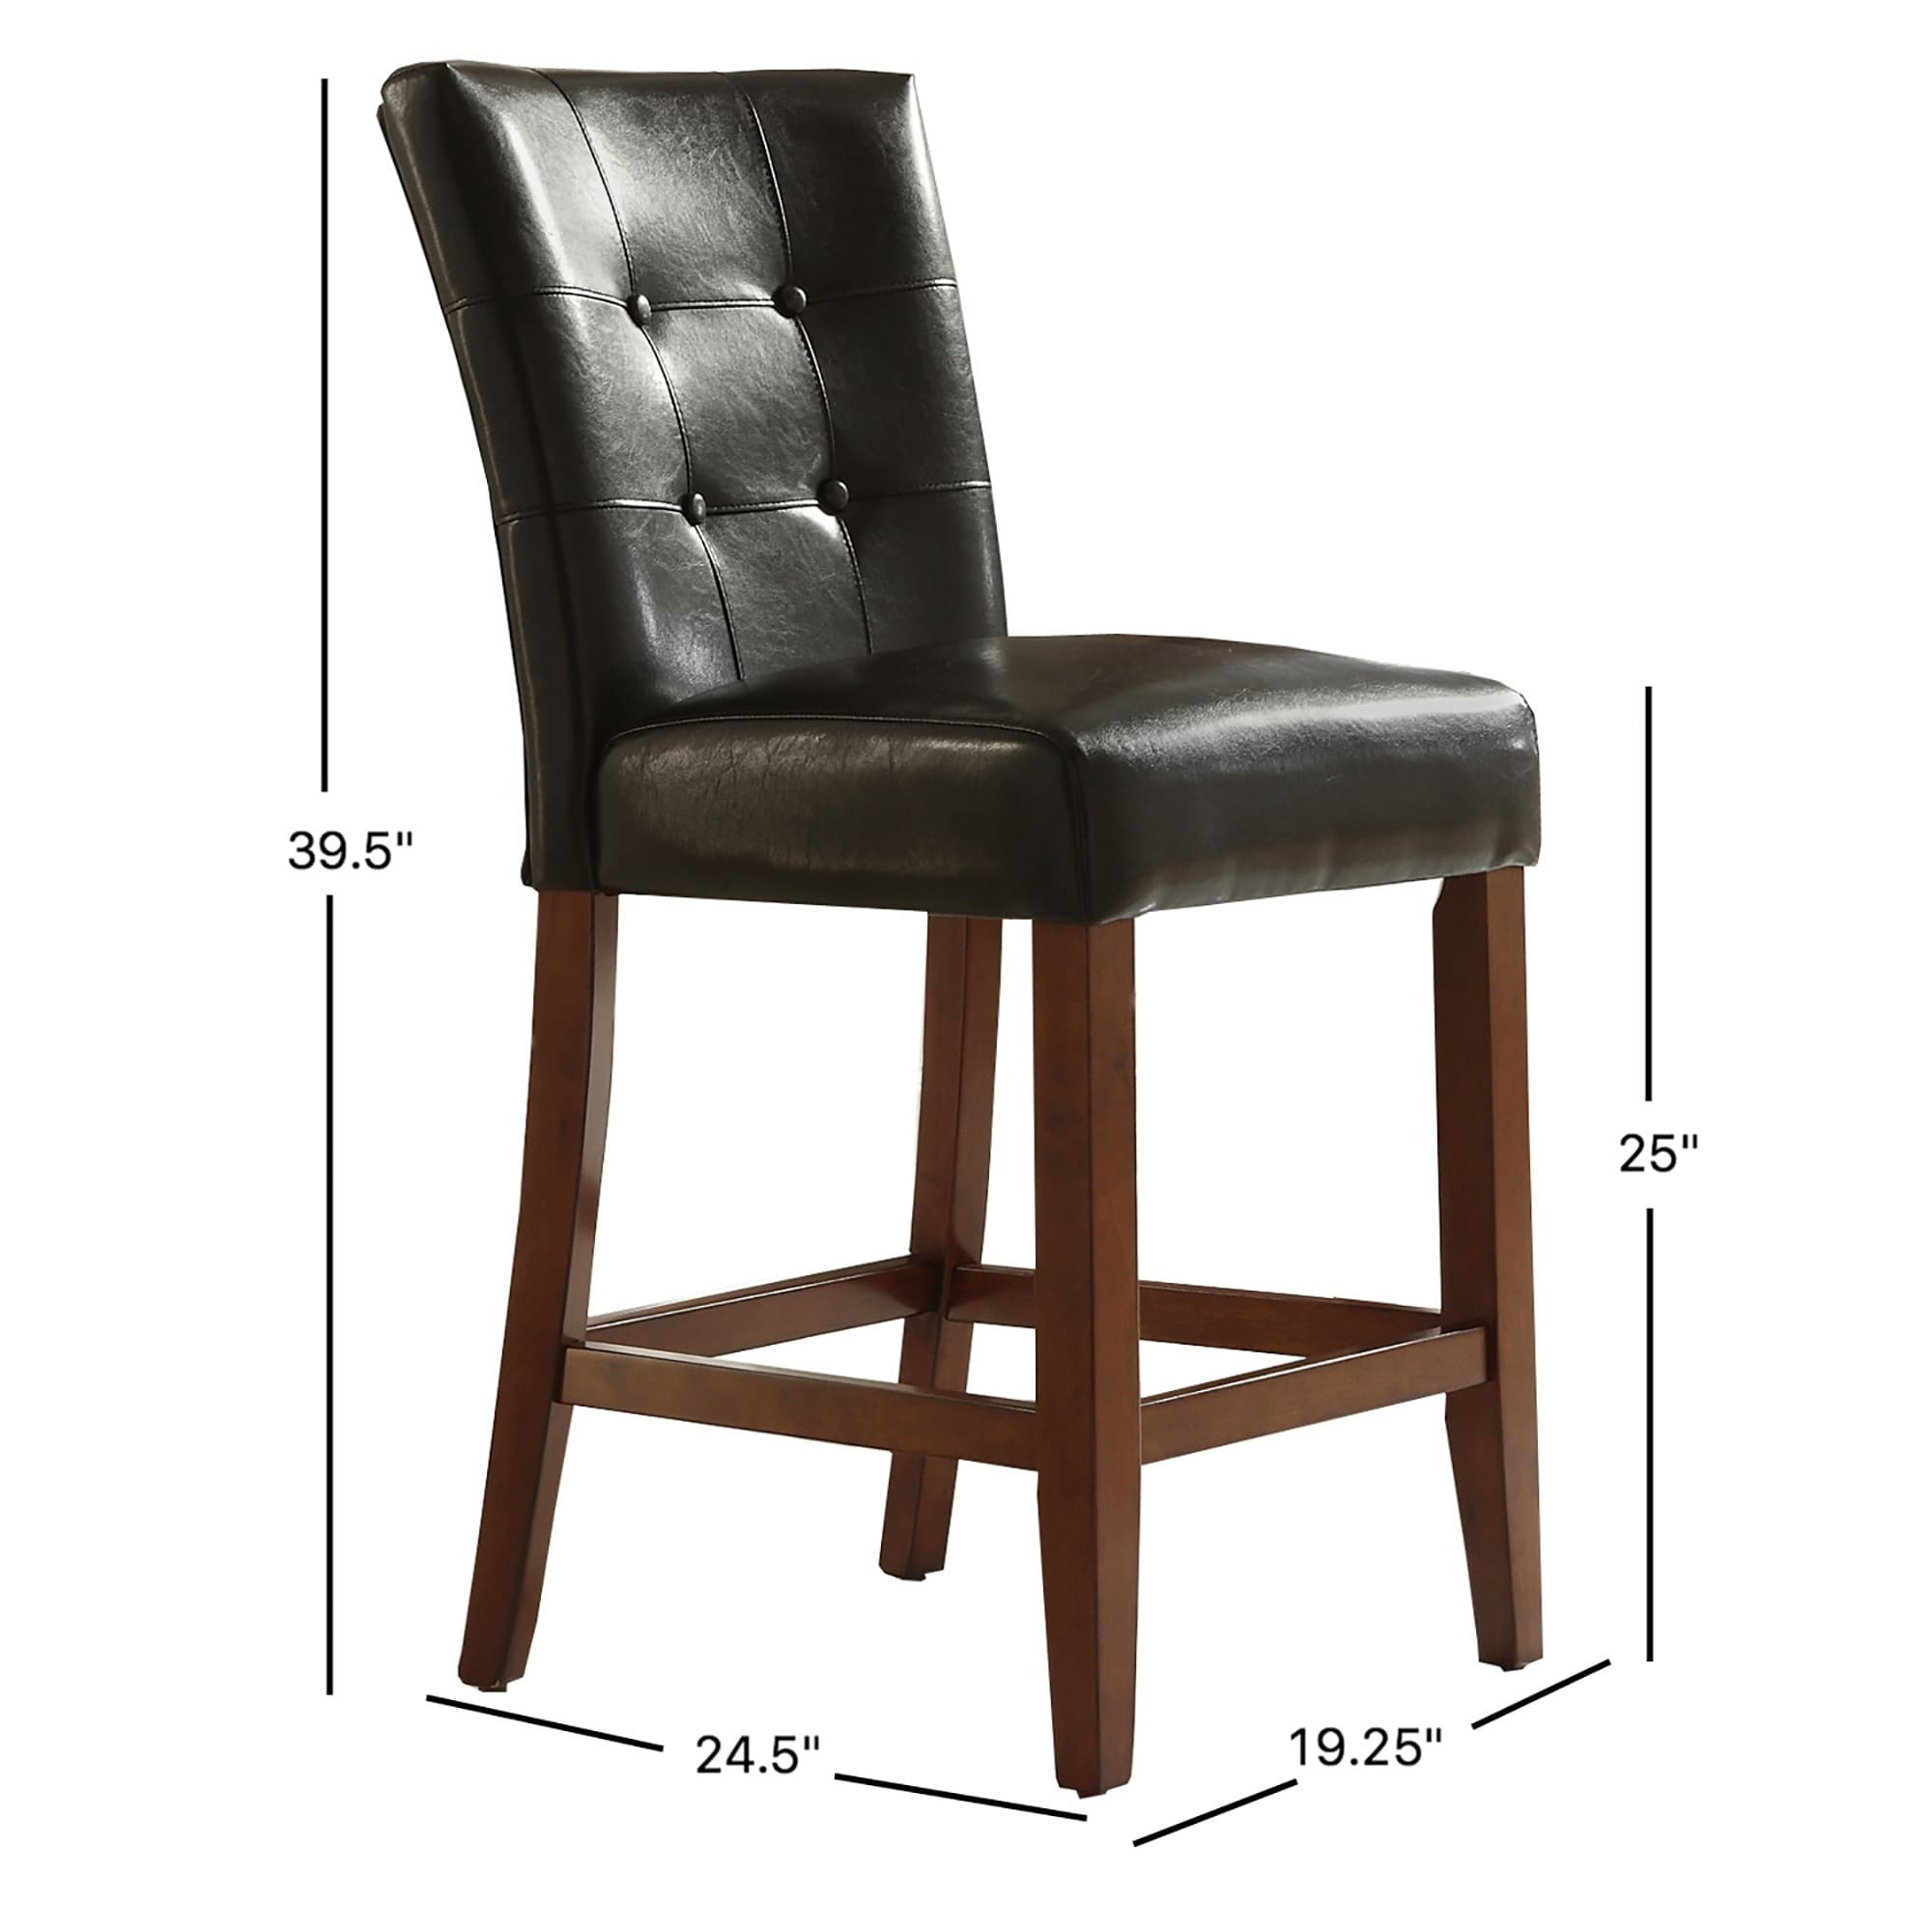 Shop tufted button high back dark brown pu 24 inch high back stools set of 2 by inspire q classic on sale free shipping today overstock 2484339